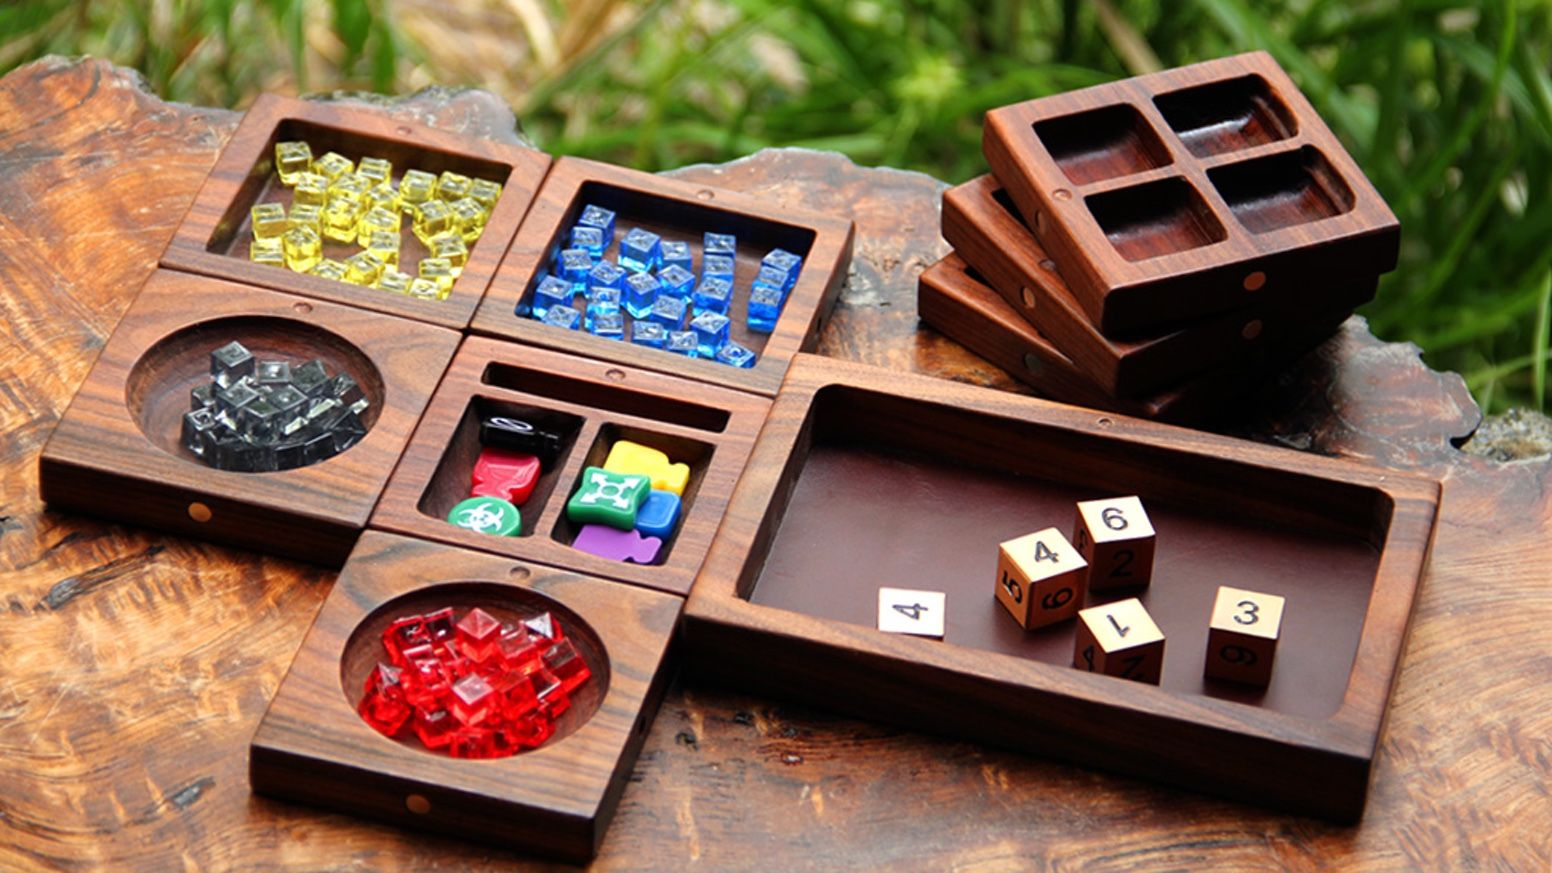 A modular tile system for organizing board game tokens and